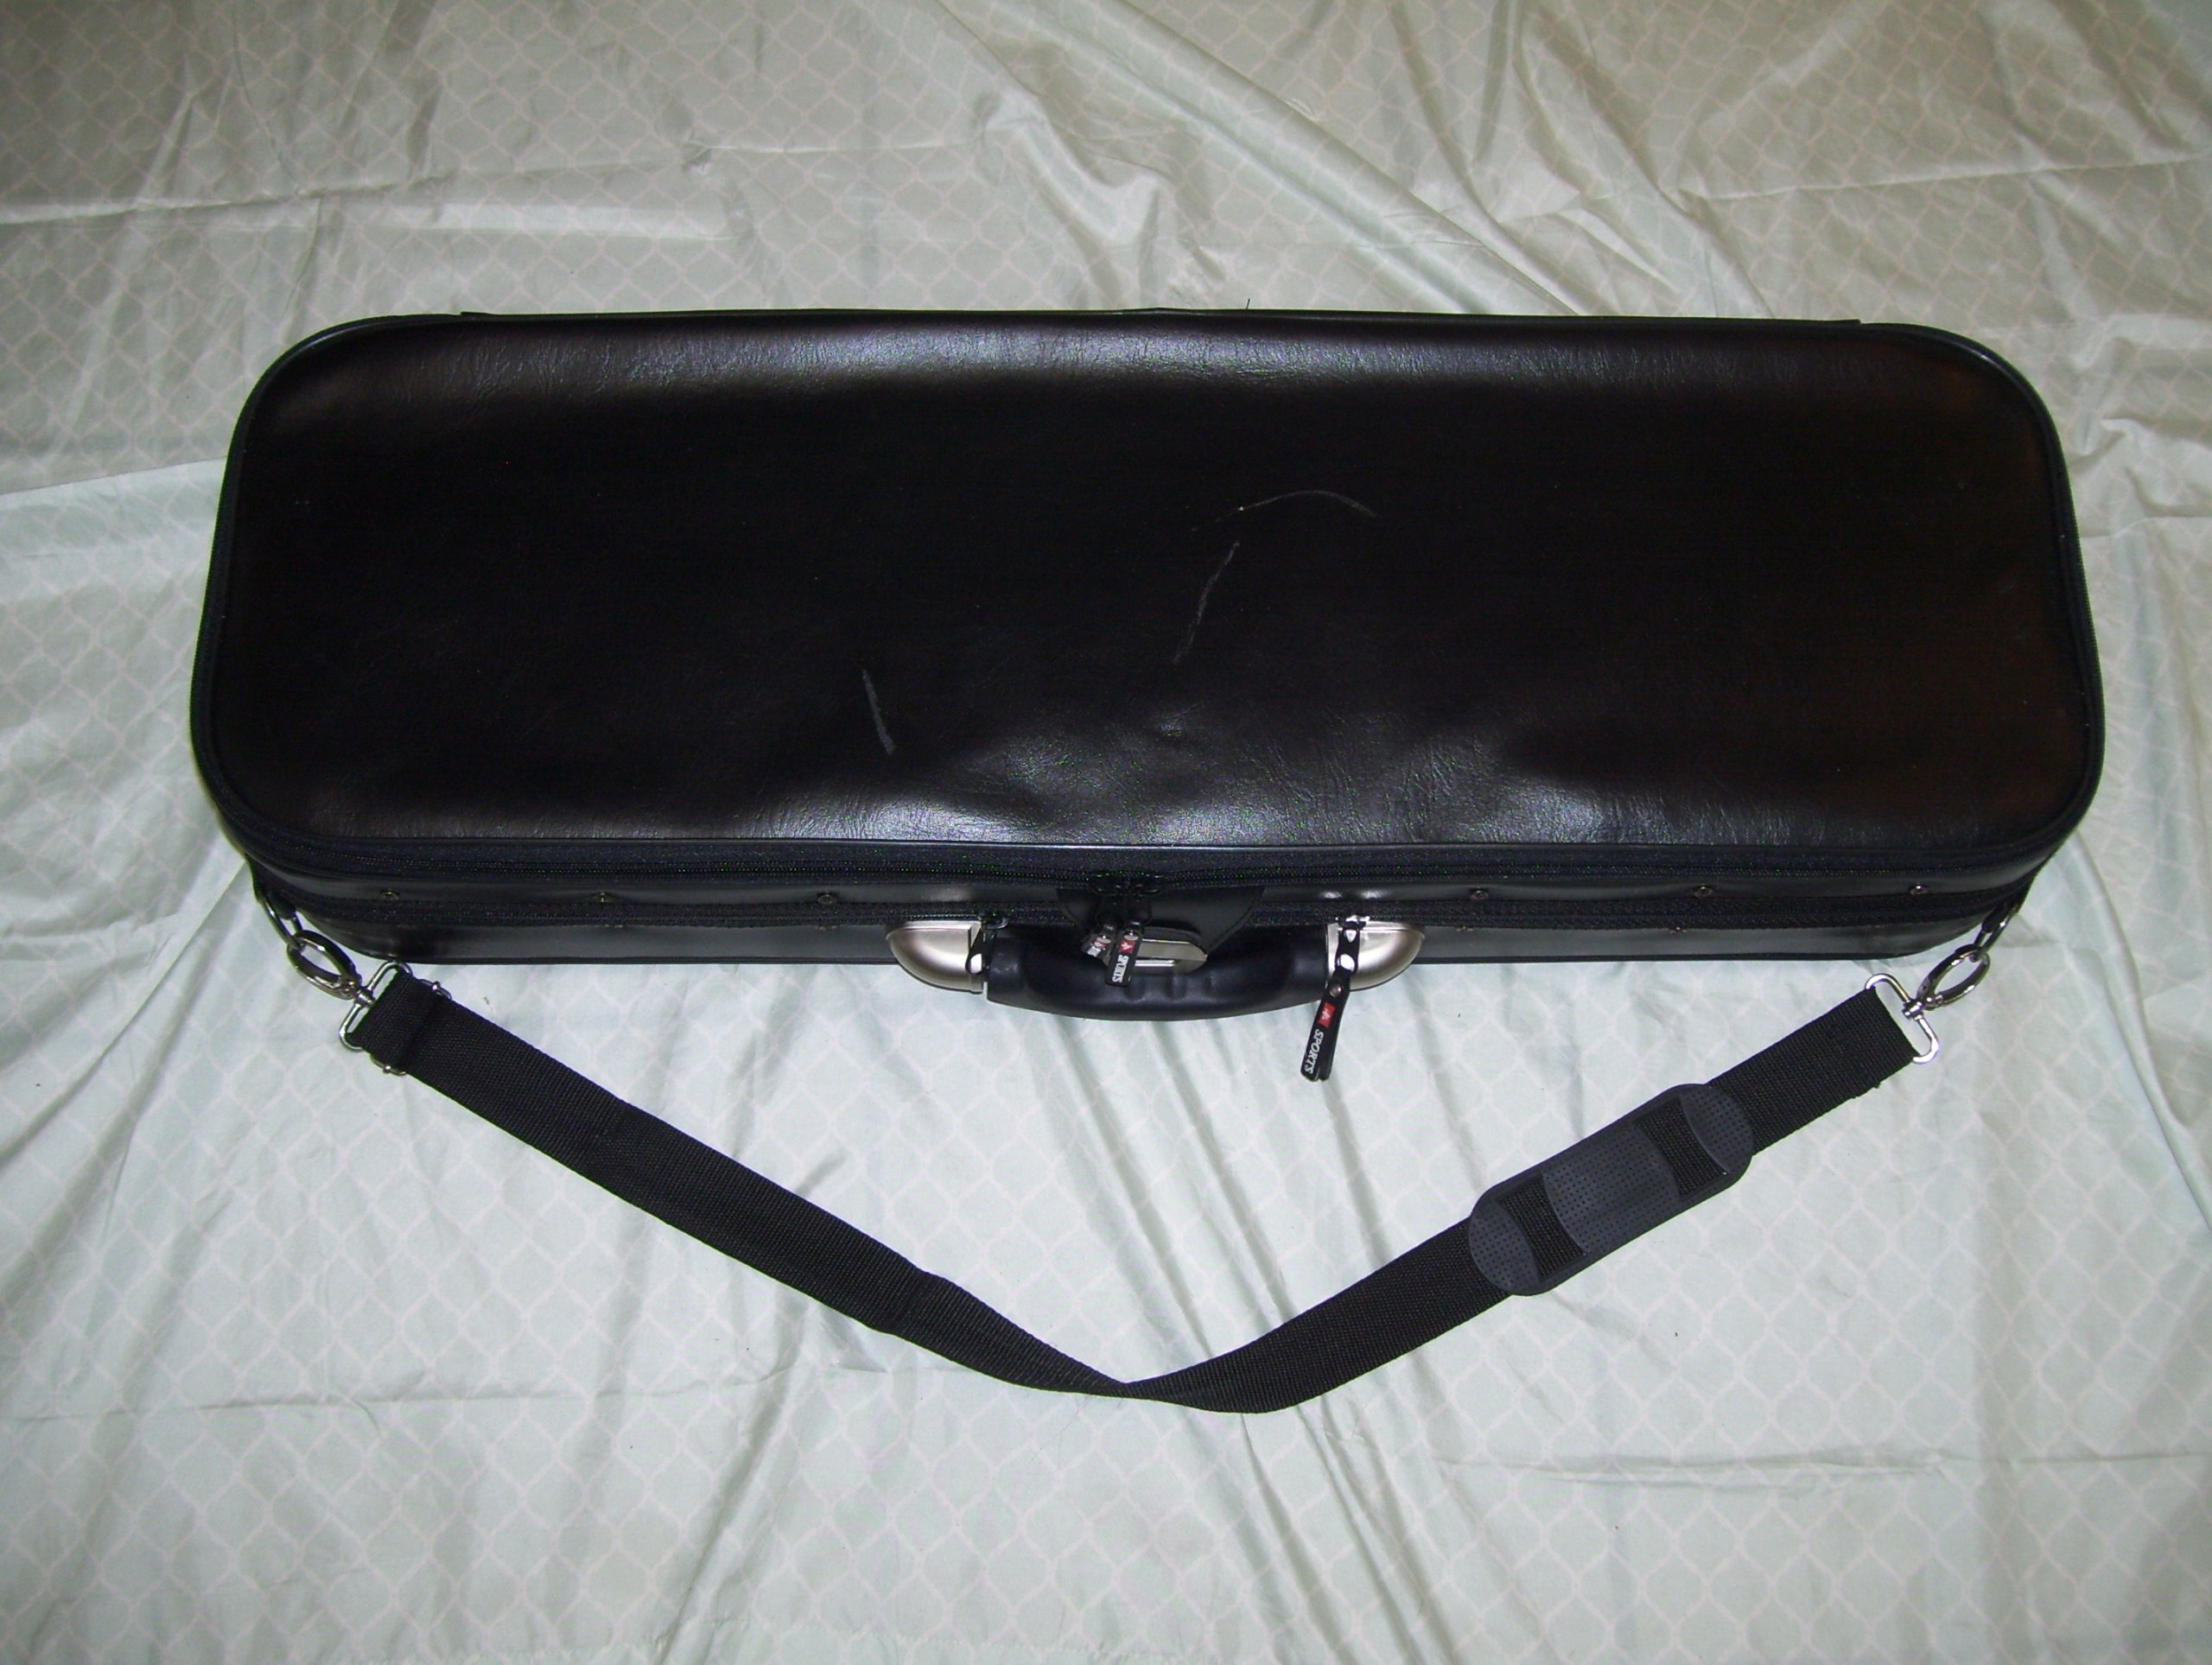 New violin hard case, arched top, Synthetic leather